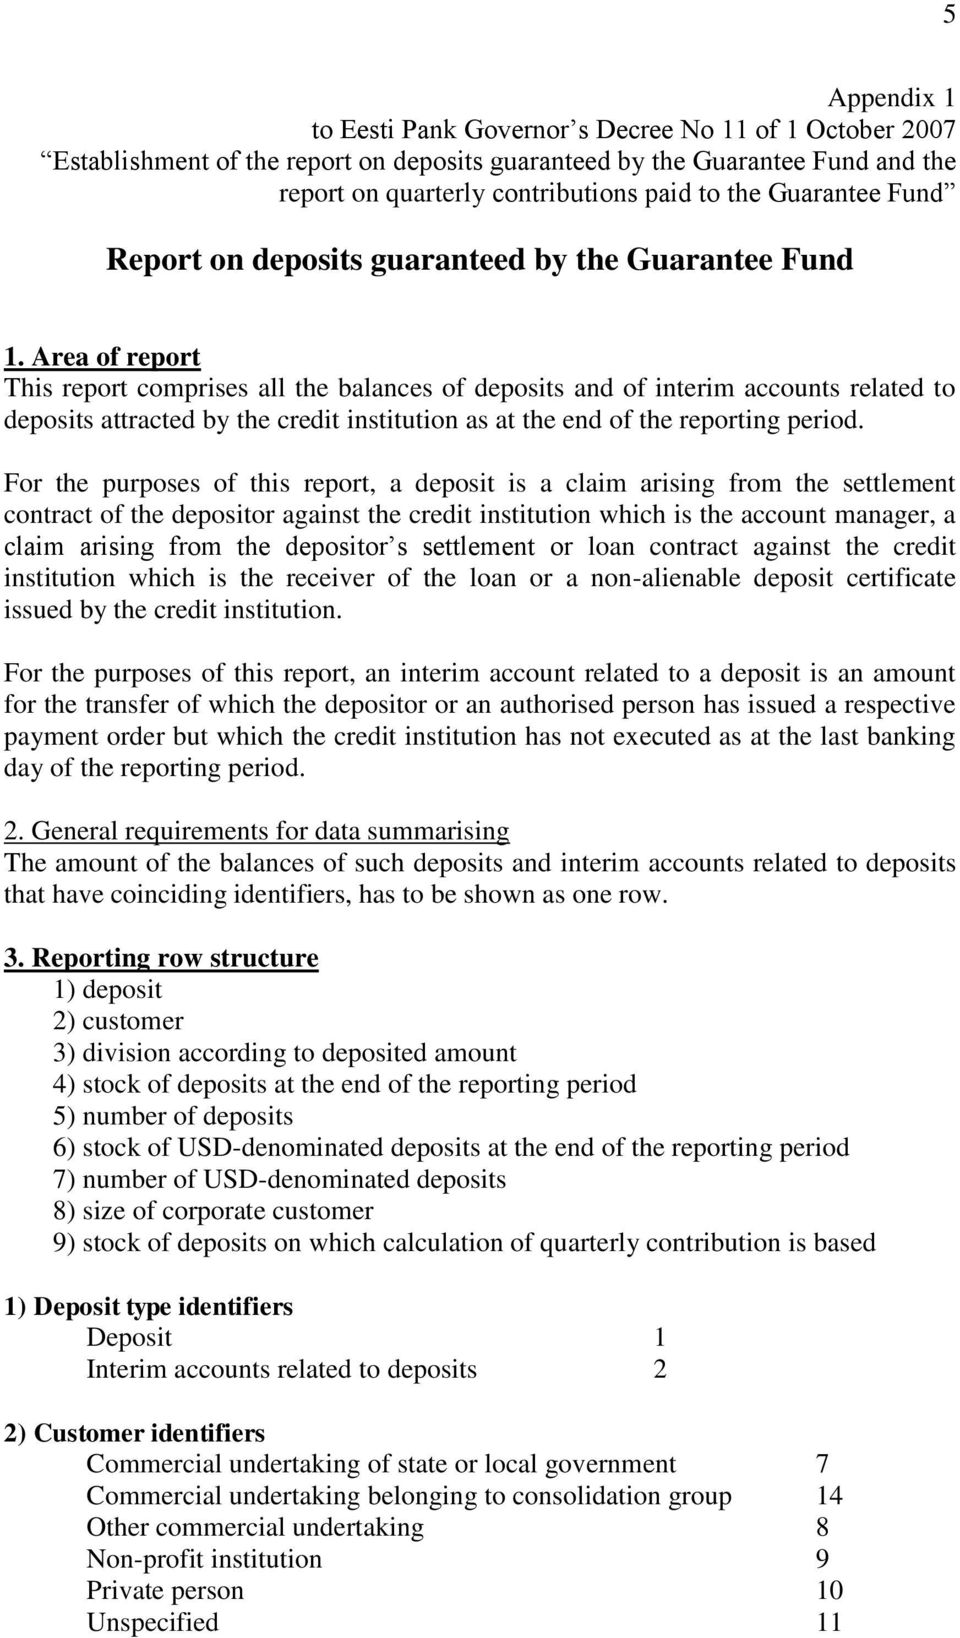 Area of report This report comprises all the balances of deposits and of interim accounts related to deposits attracted by the credit institution as at the end of the reporting period.